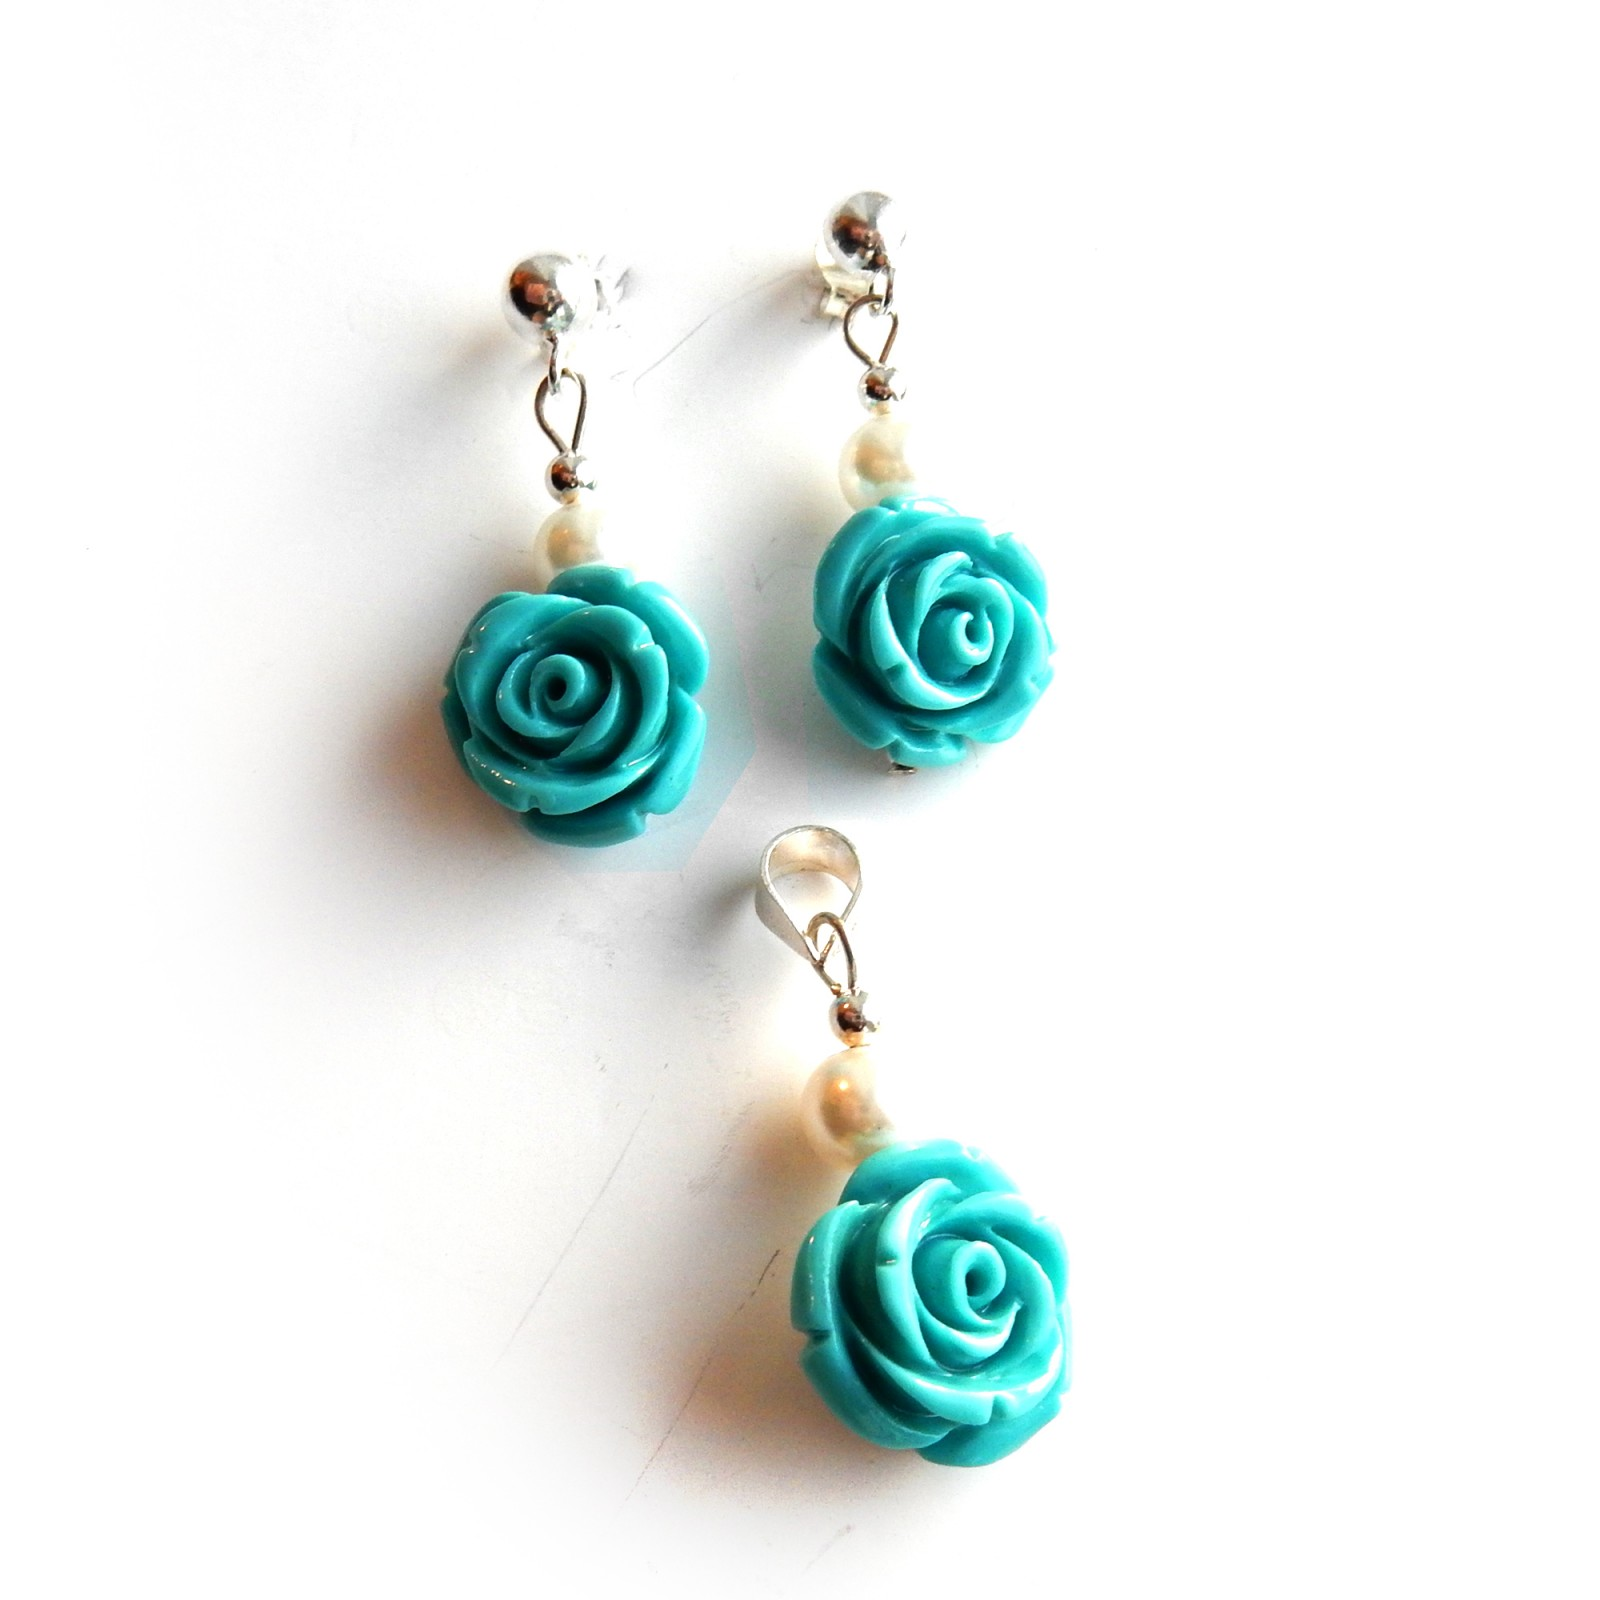 Photo of Turquoise Pearl Flower Earrings Pendant Jewelery Set Sterling Silver